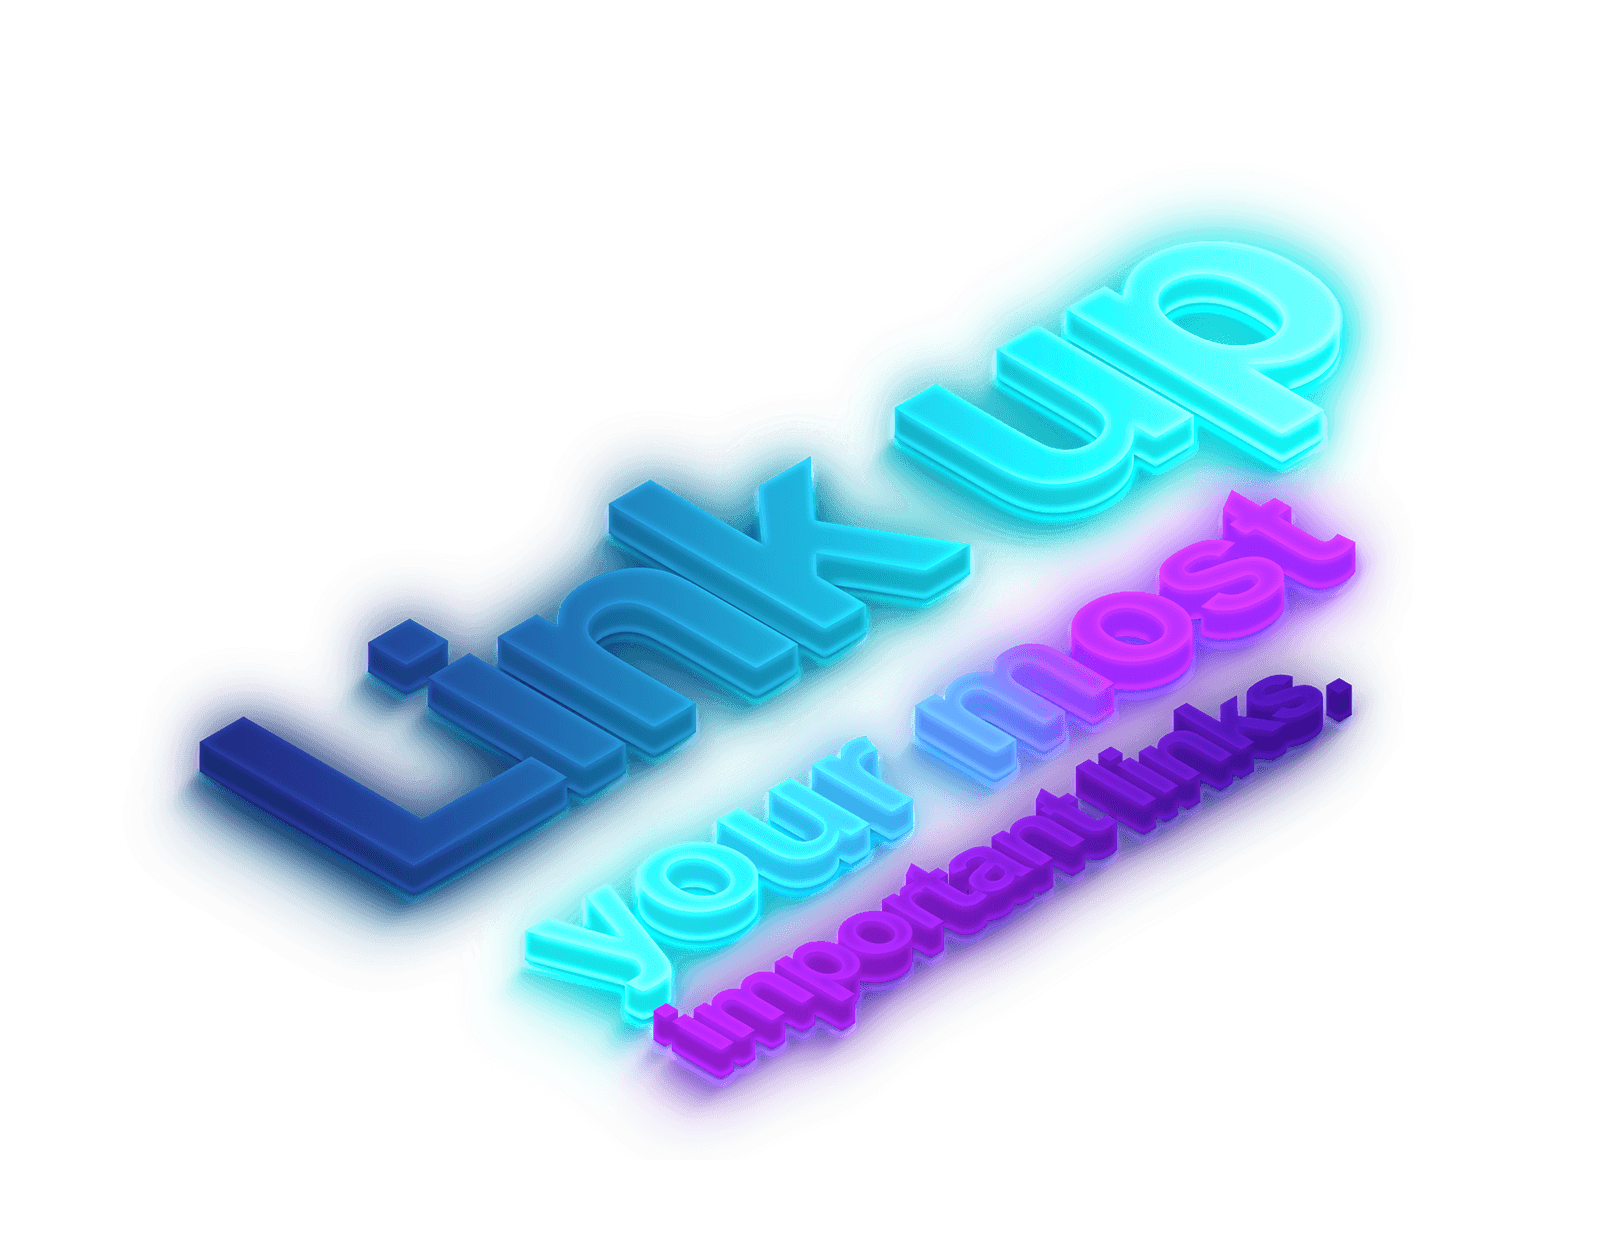 """3D isometric icon of the words """"Link up your most important links."""" lit by color lights below."""